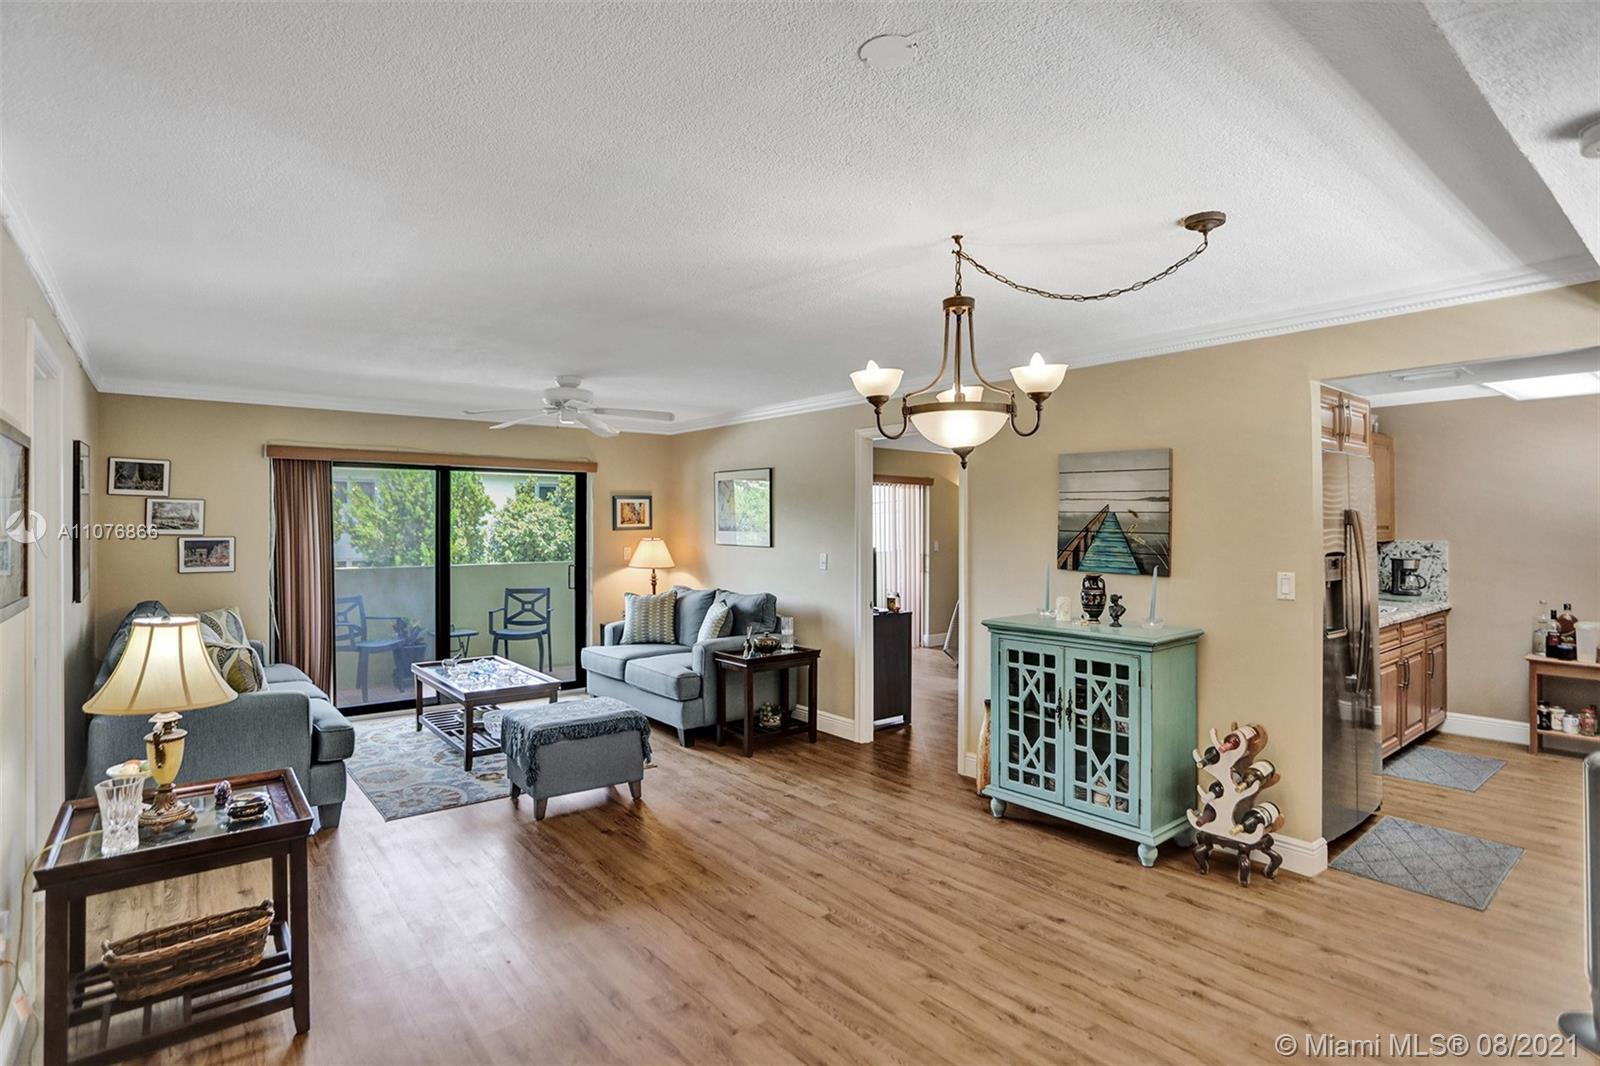 Beautifully renovated & spacious 2/2 unit in prime location just steps from beach, ocean jogging pat